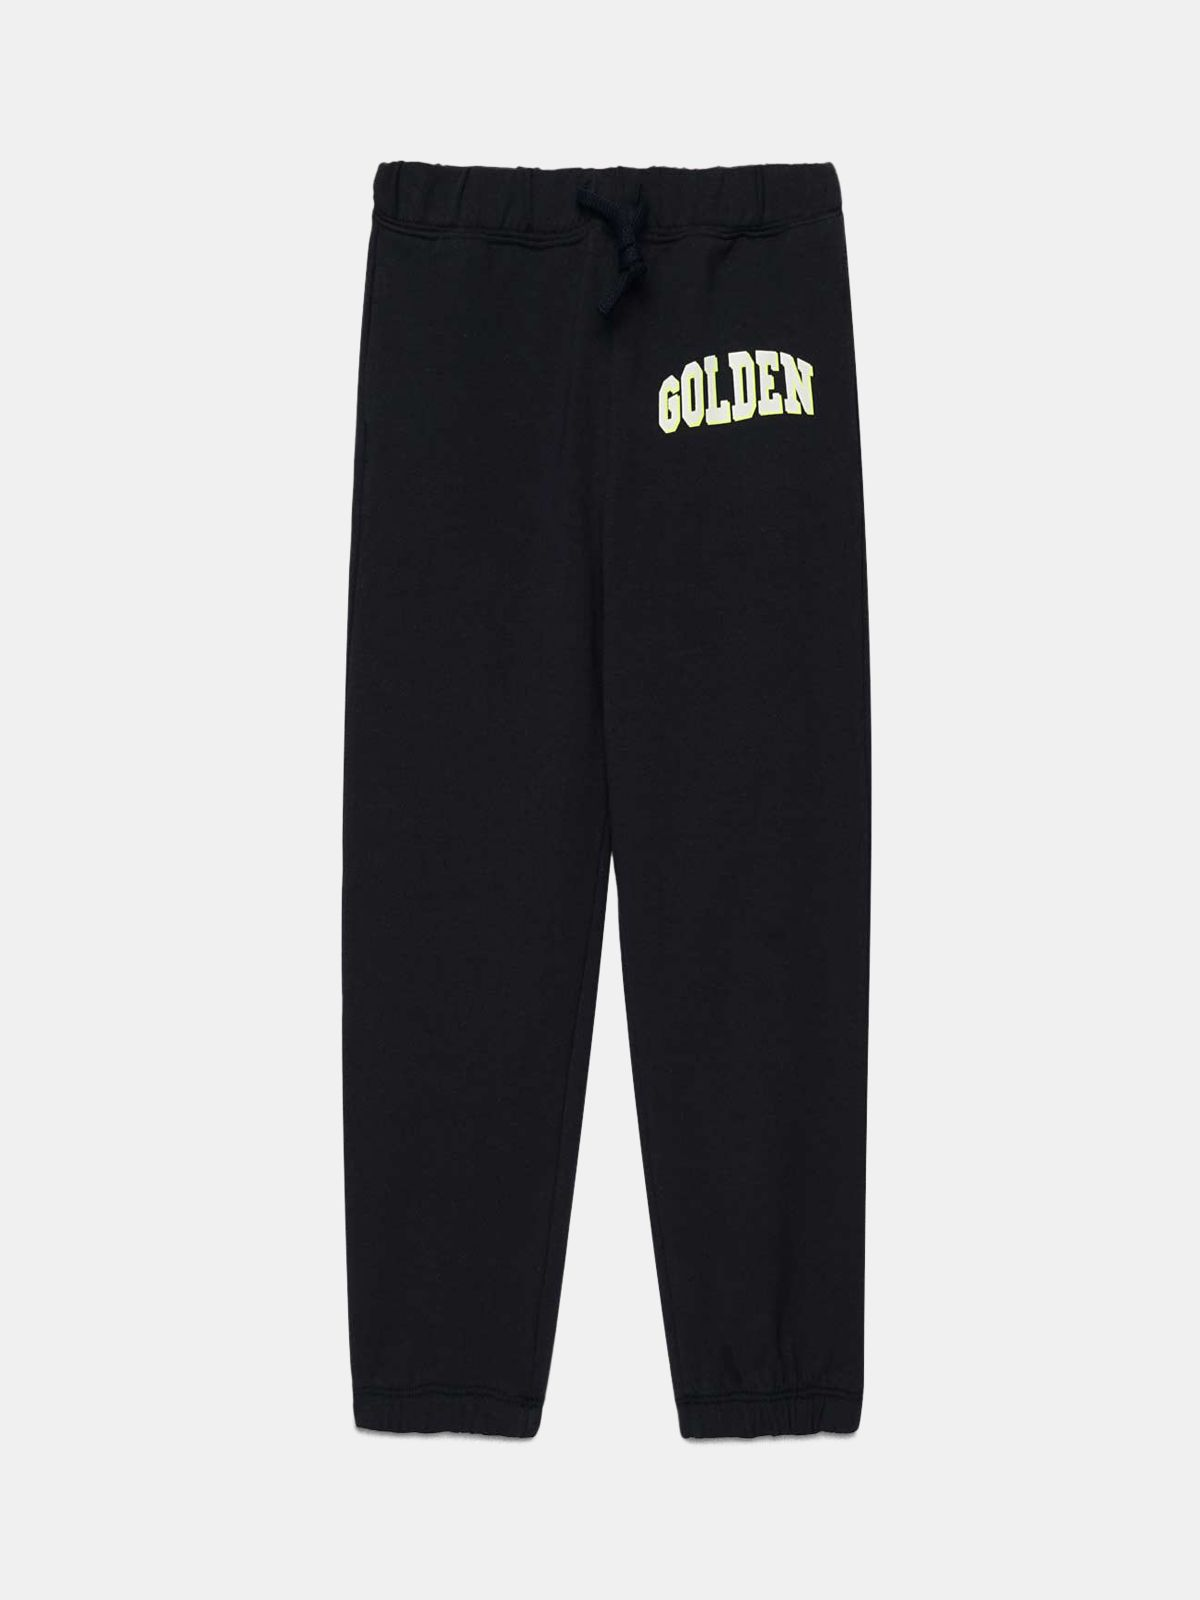 Dark blue Golden joggers with contrasting white logo